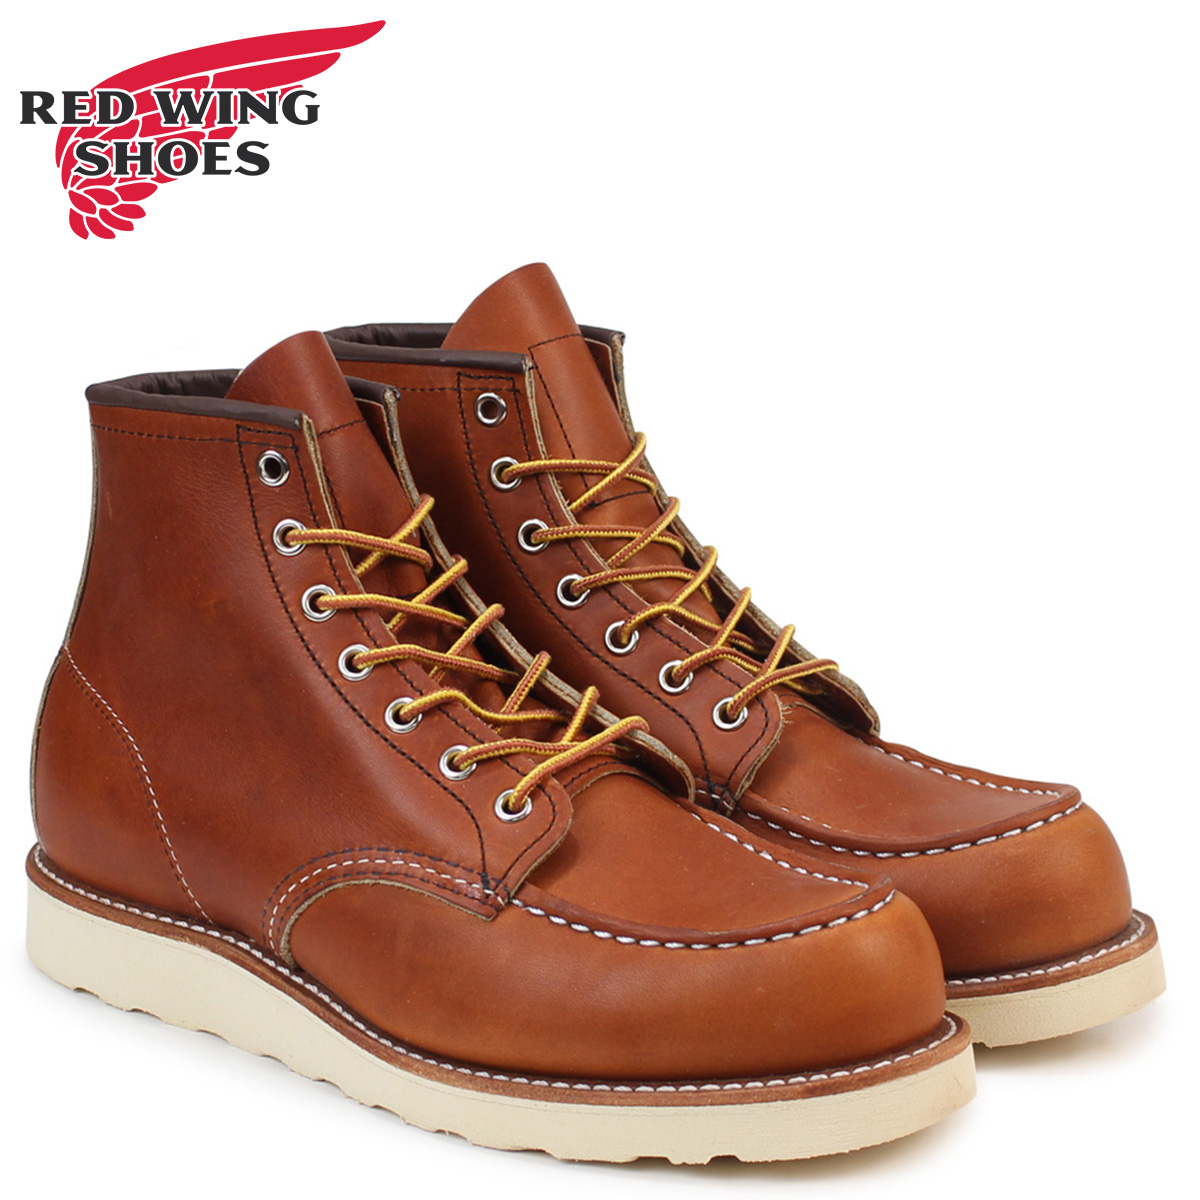 RED WING CLASSIC MOC BROWN BOOT 875 MADE IN USA 9 D